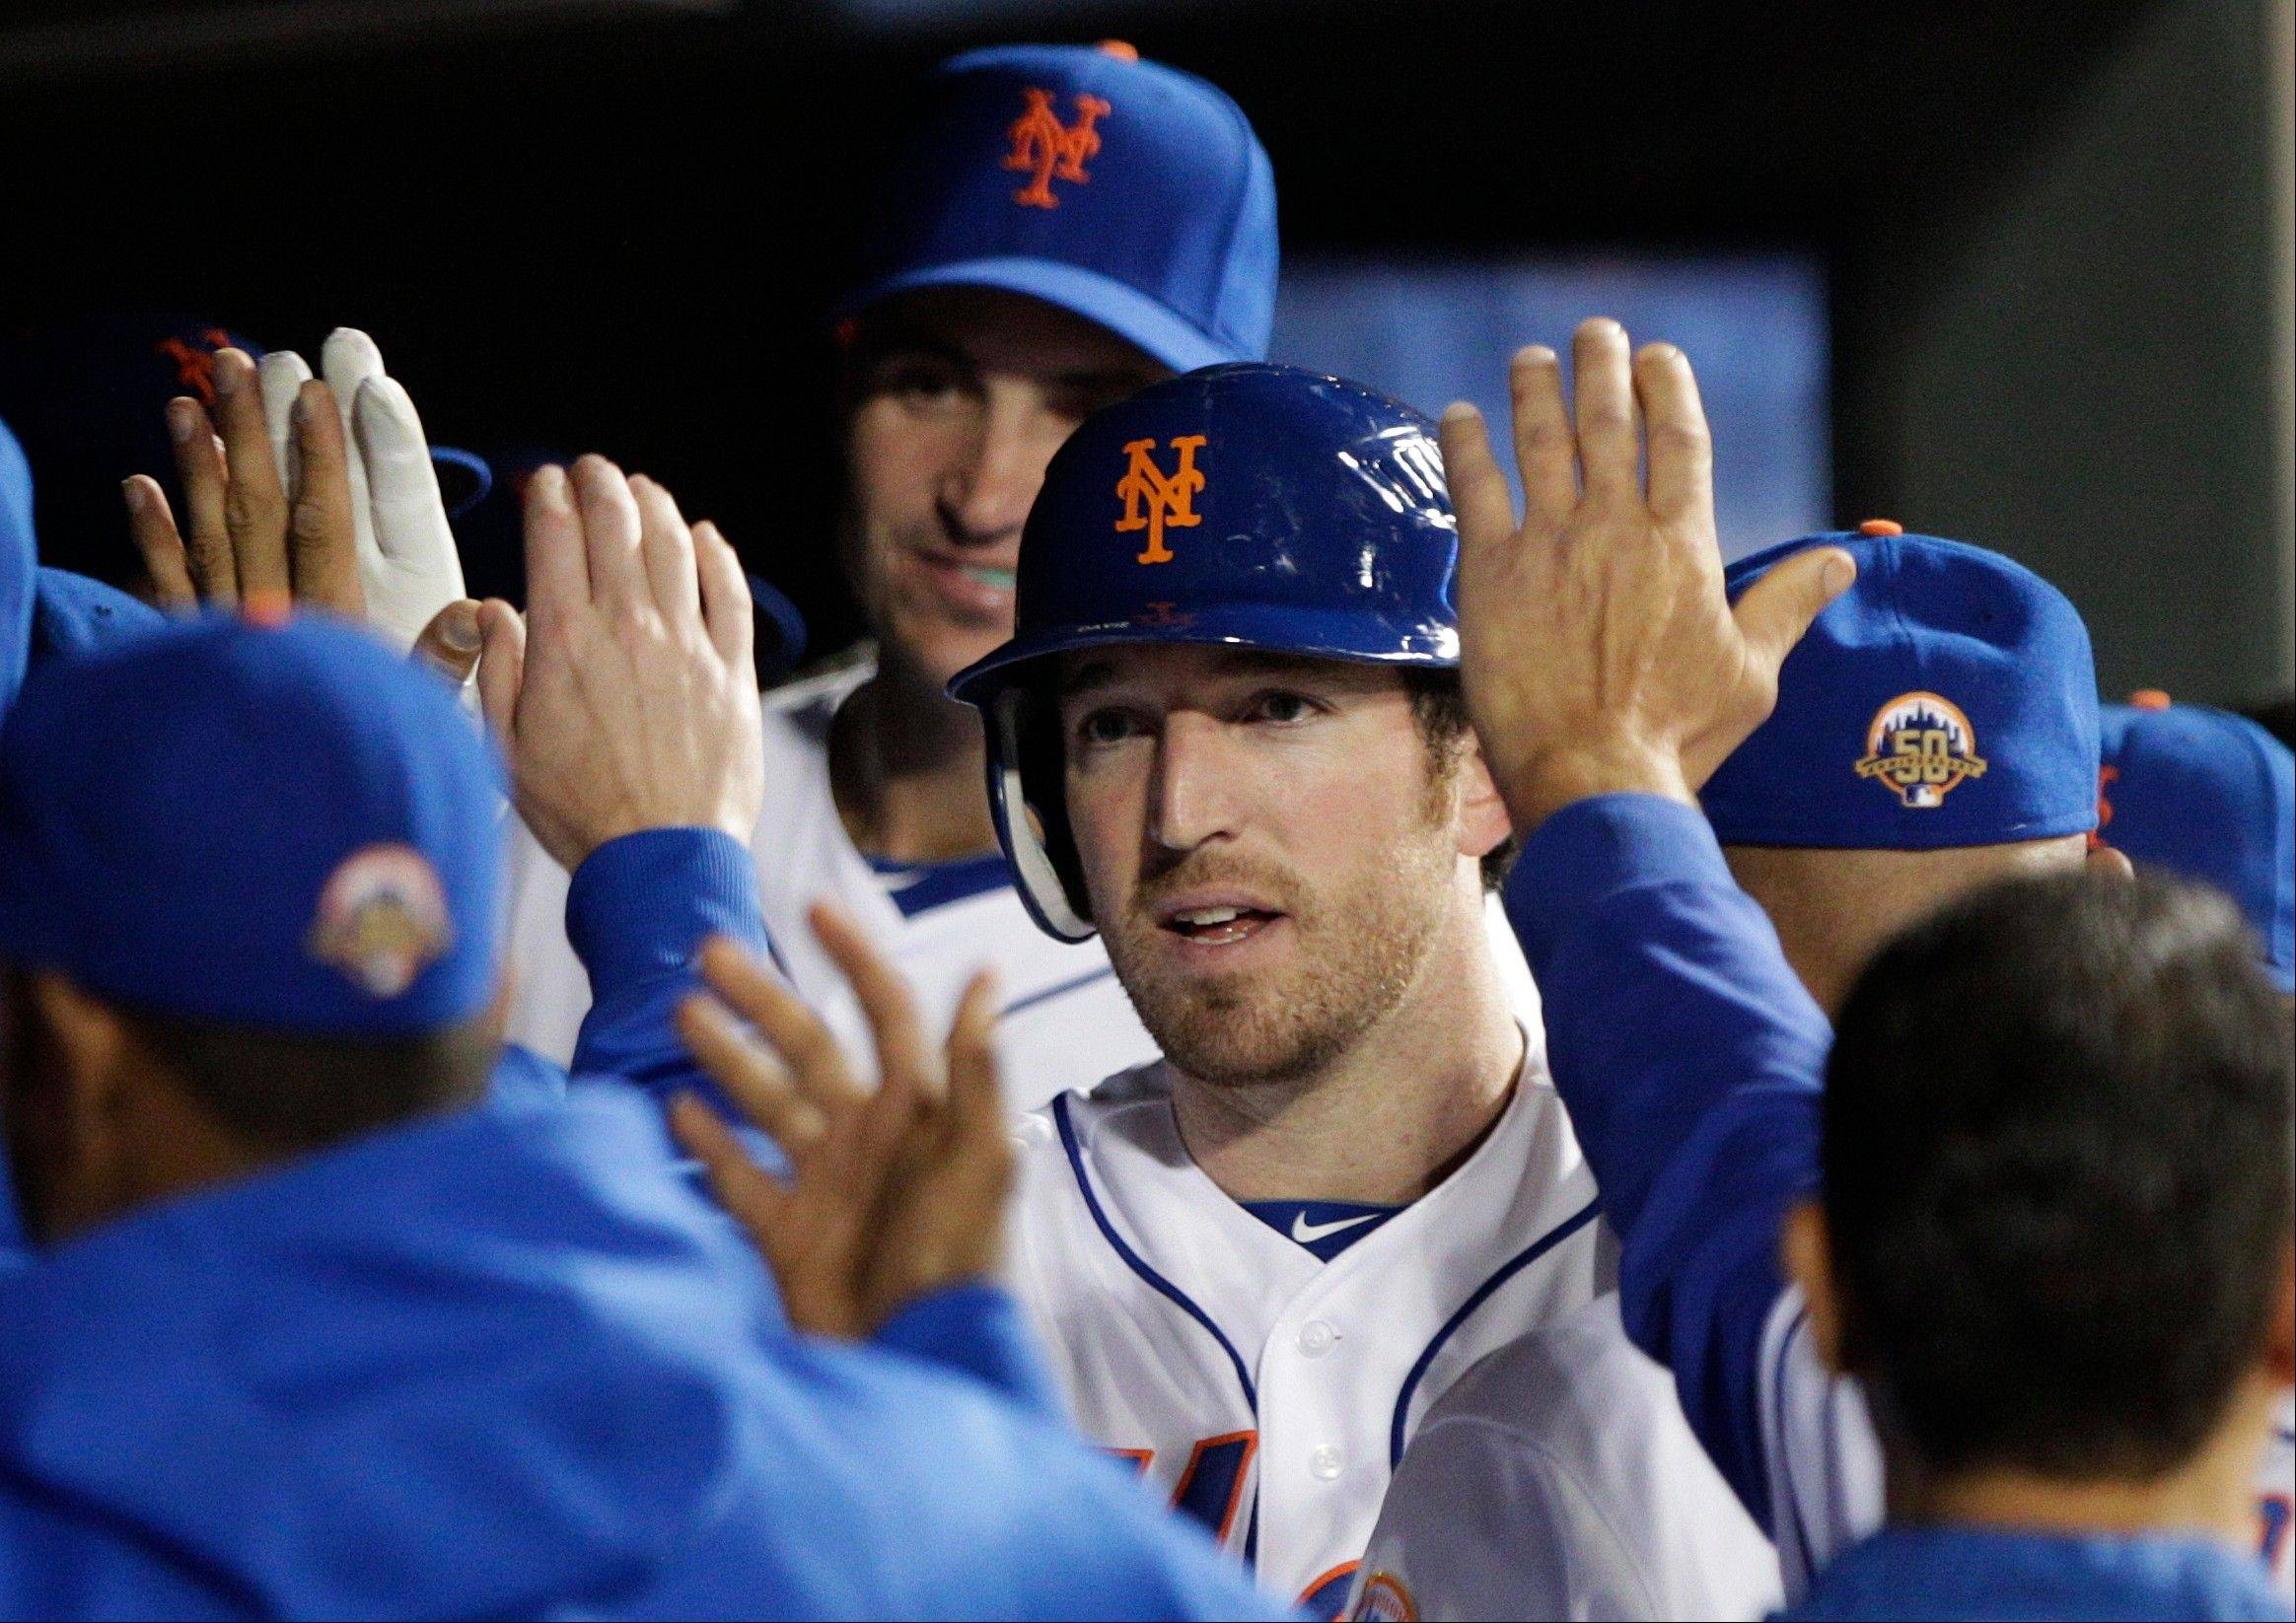 New York's Ike Davis celebrates with teammates after hitting a home run during the seventh inning Friday at home against the Miami Marlins.